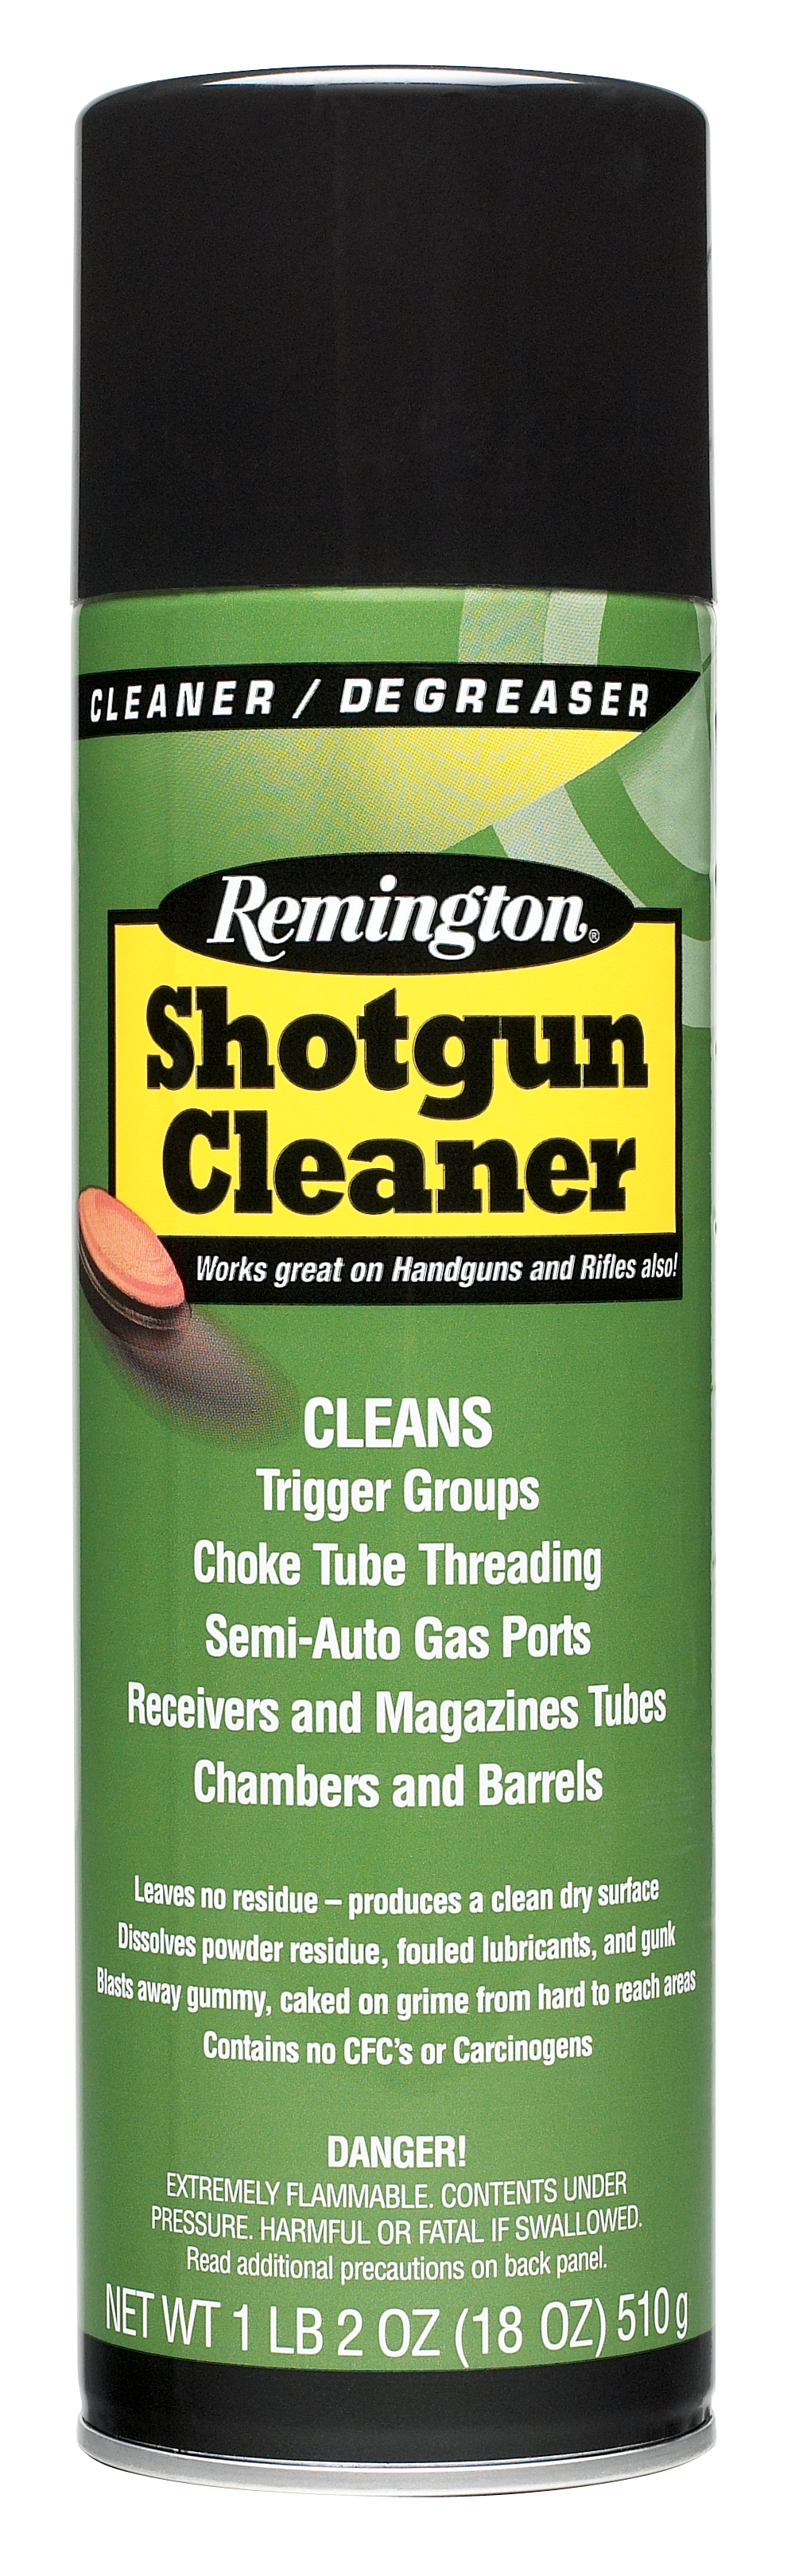 Remington Accessories 18472 Remington Shotgun Cleaner Aerosol Degreaser 18 oz